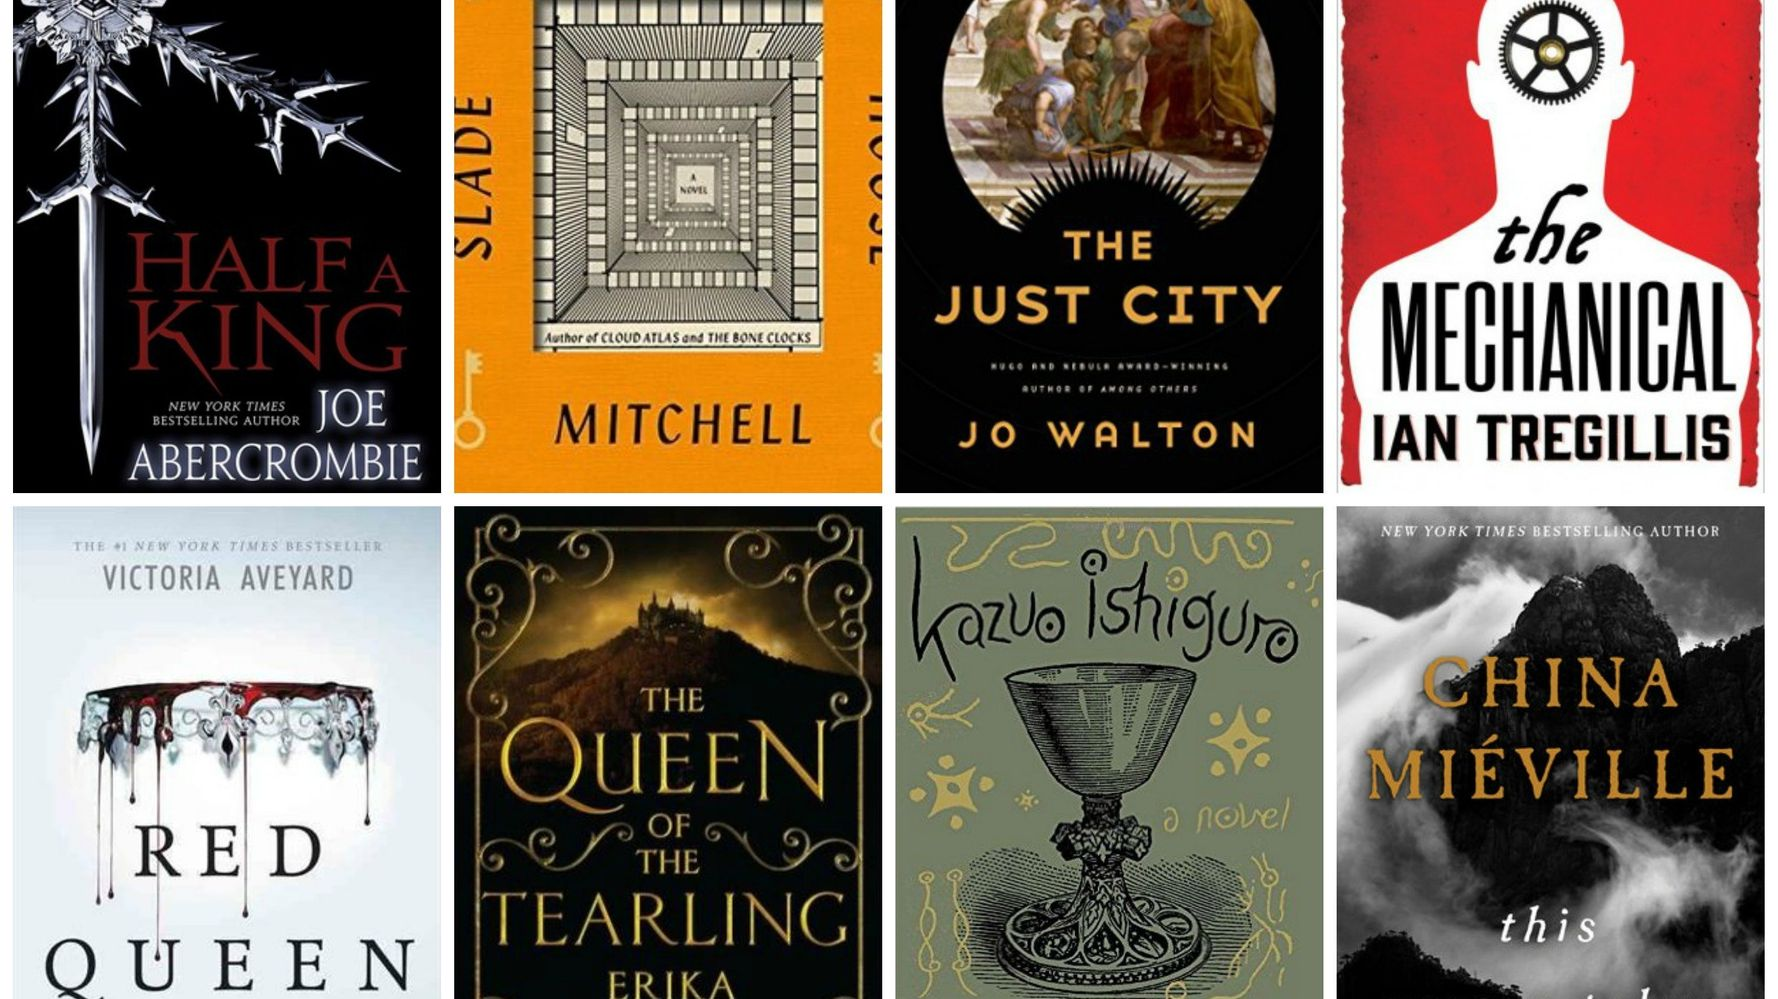 Books To Read While Waiting For George R.R. Martin To Finish 'GoT'